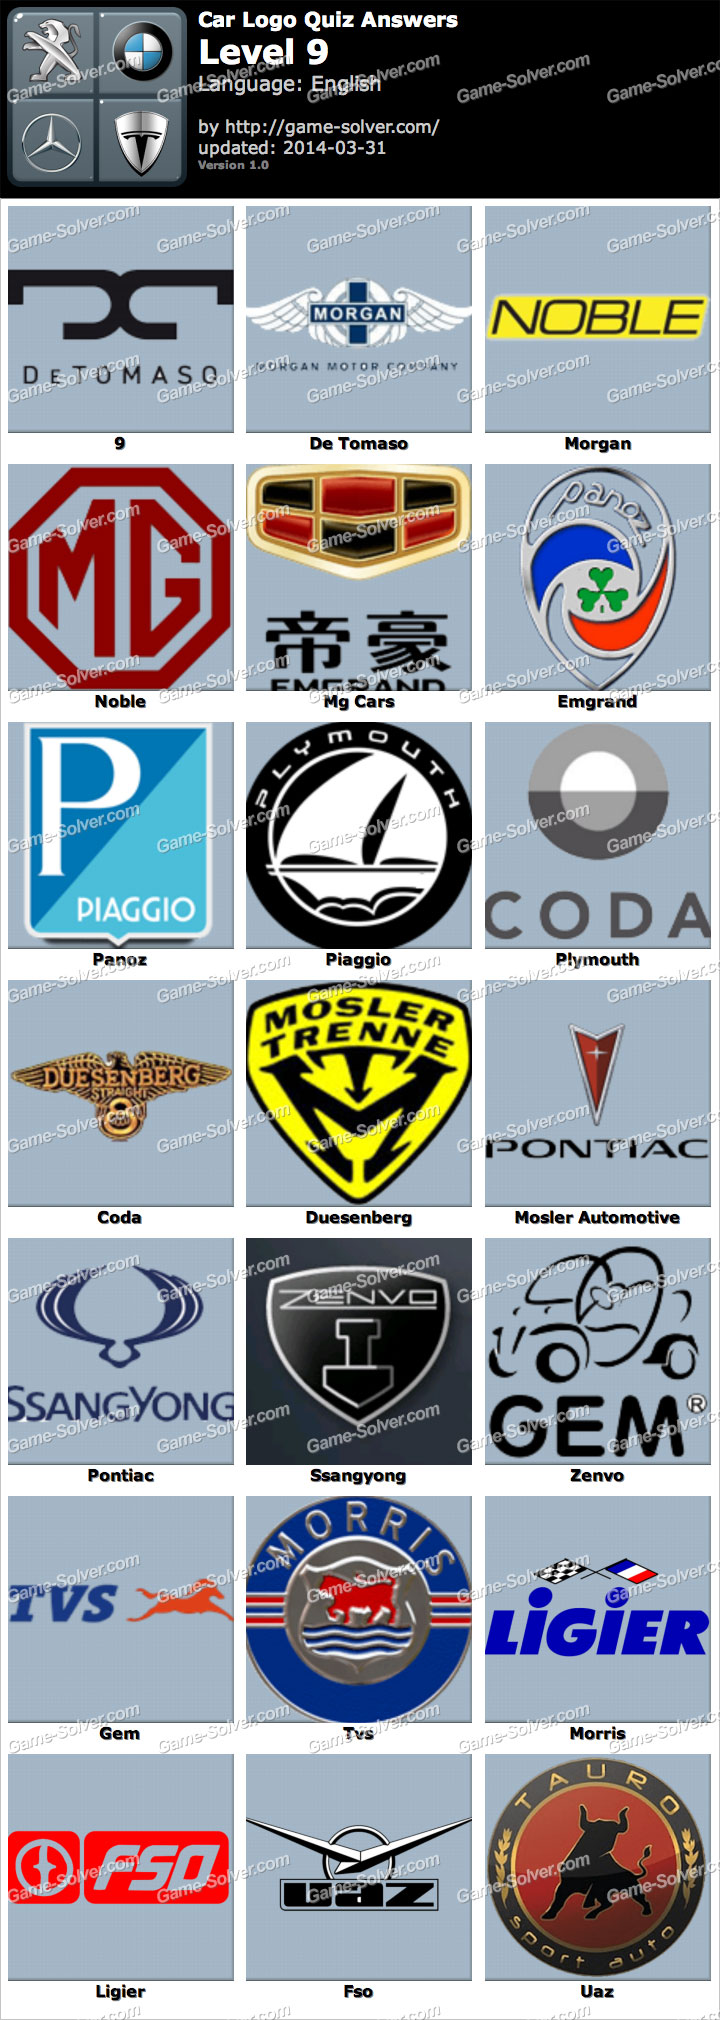 Car Logo Quiz Level Game Solver - Car sign with namesclick a car logo quiz